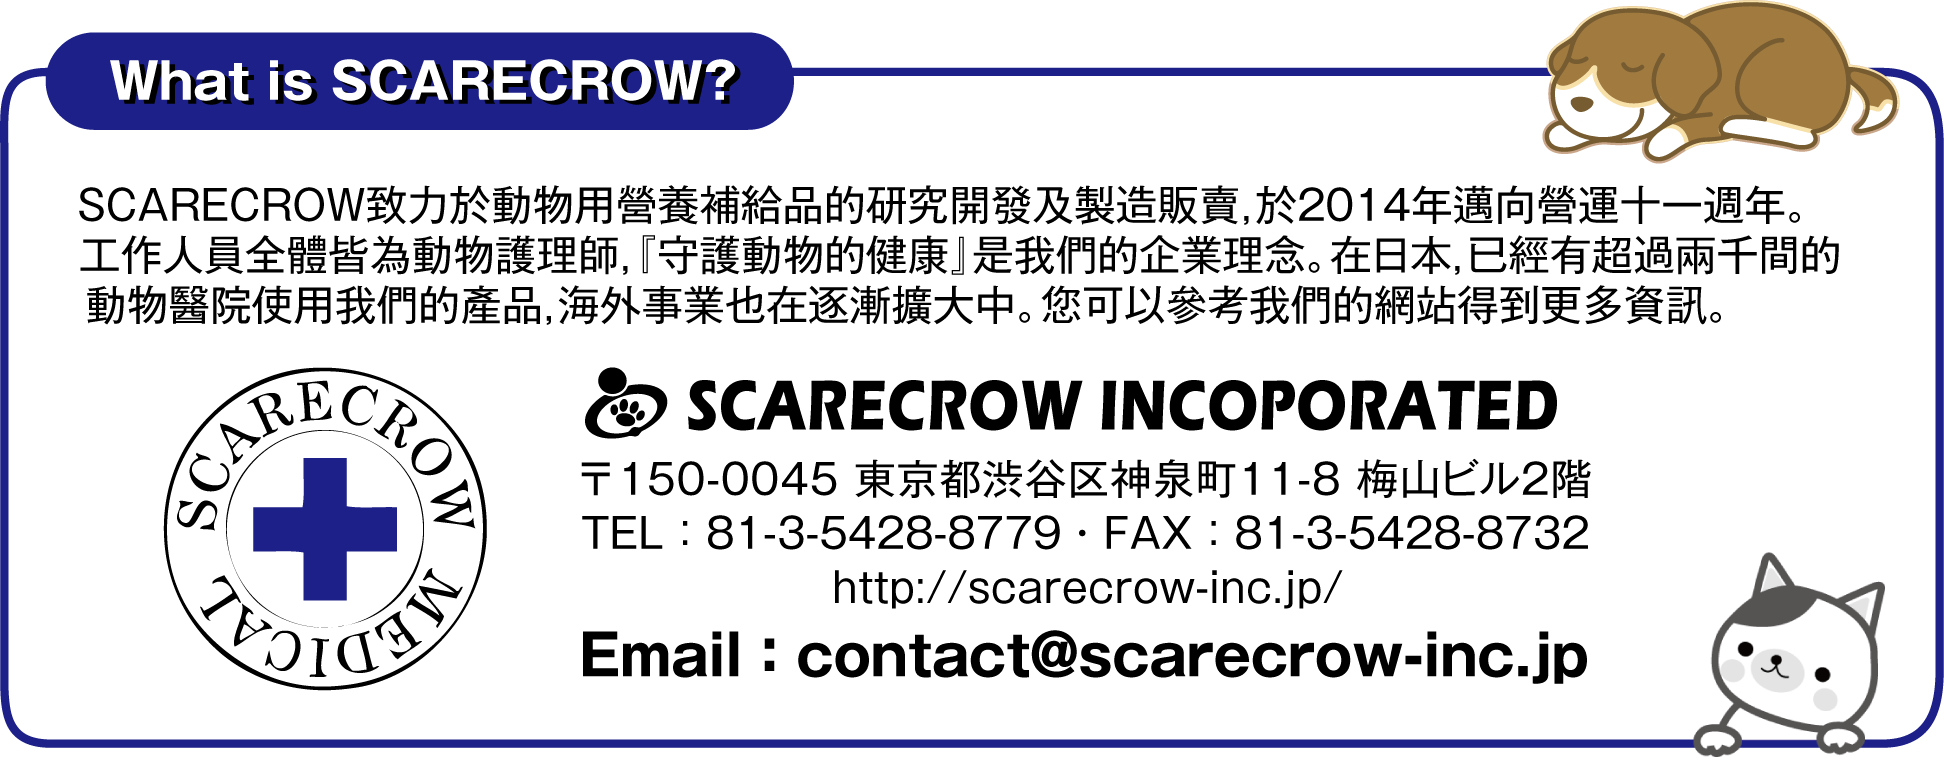 whats scarecrow.png